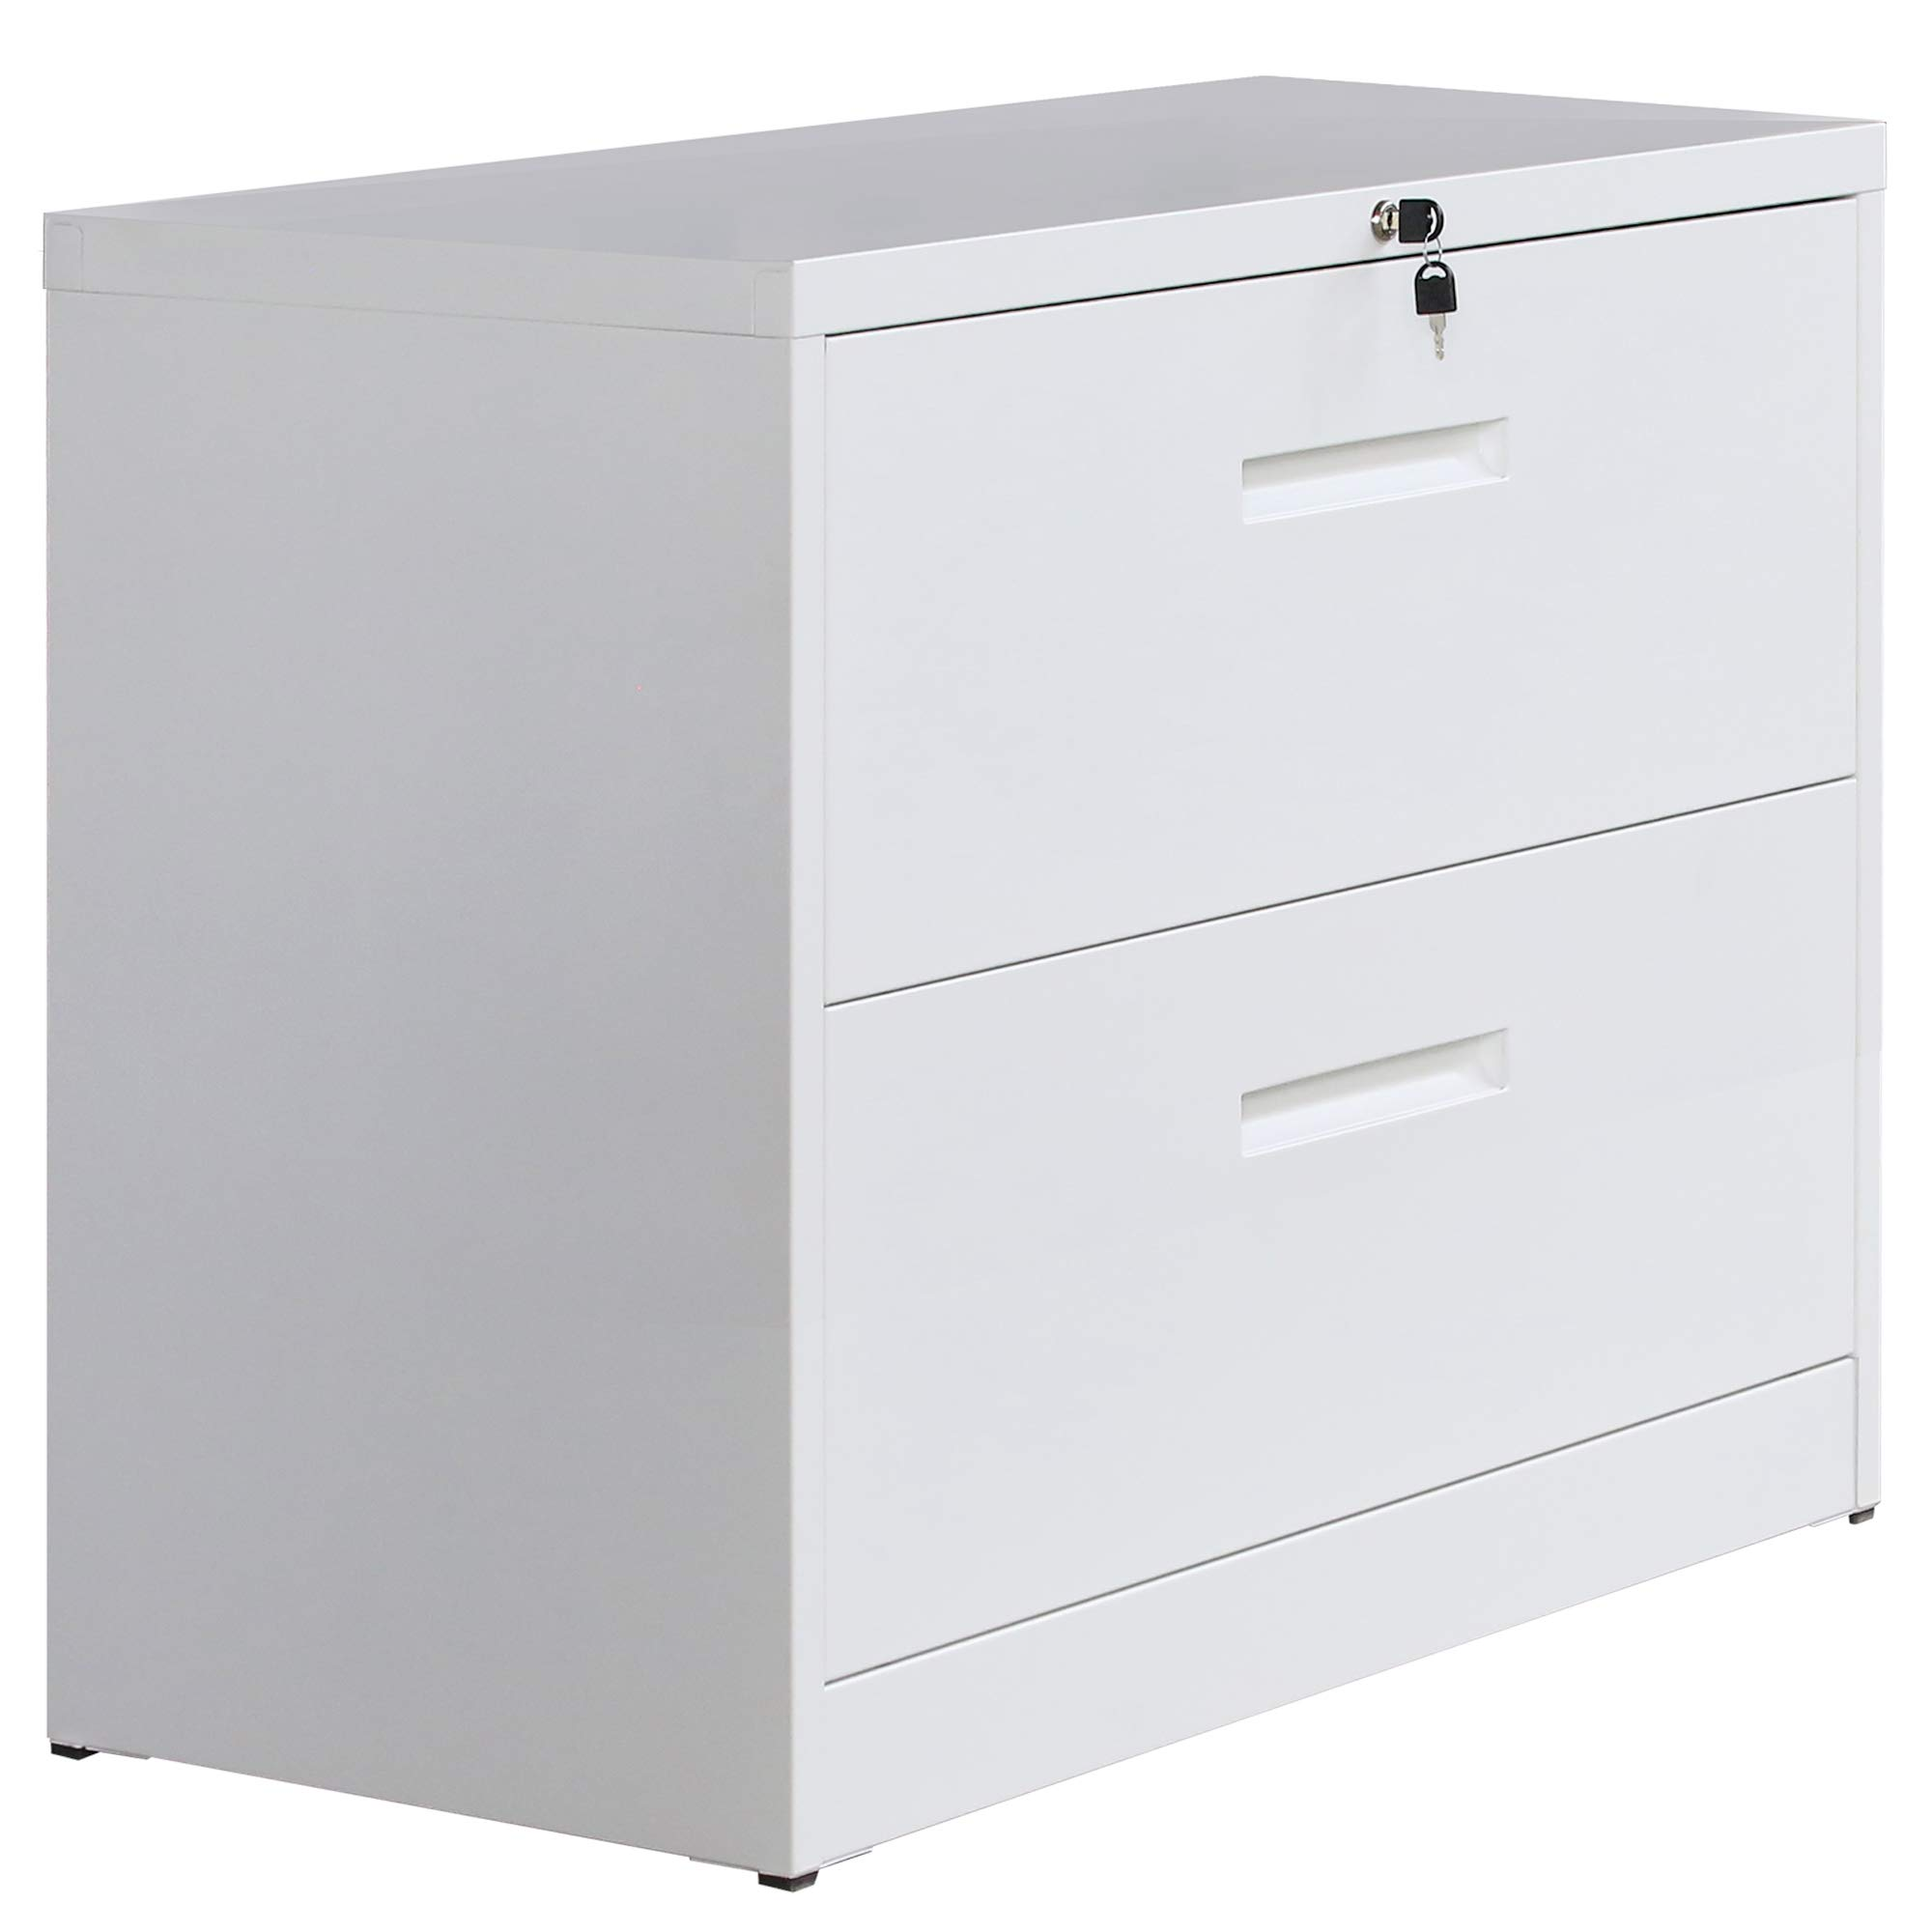 P PURLOVE Lateral File Cabinet Lockable Heavy Duty Metal File Cabinet 2 Drawer Lateral (White)